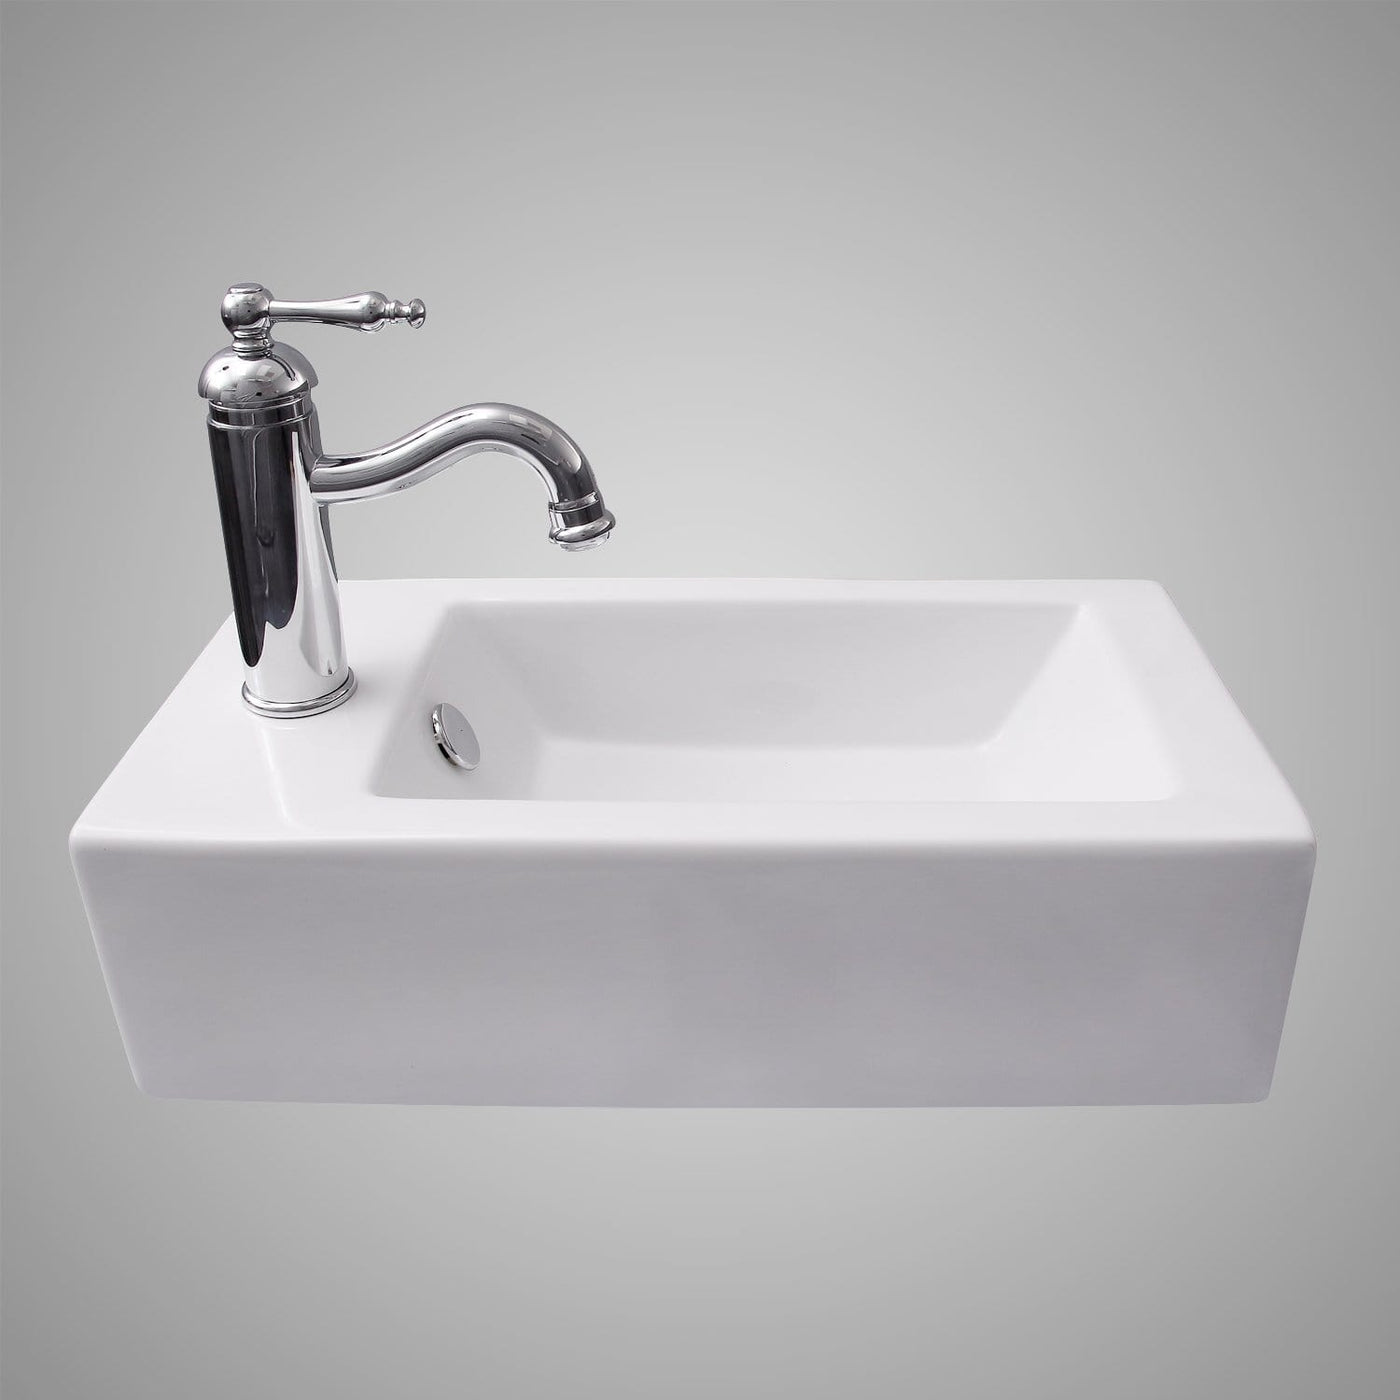 Lublin Vitreous China Wall Mount Bathroom Sink Left Side Faucet Dril Magnus Home Products